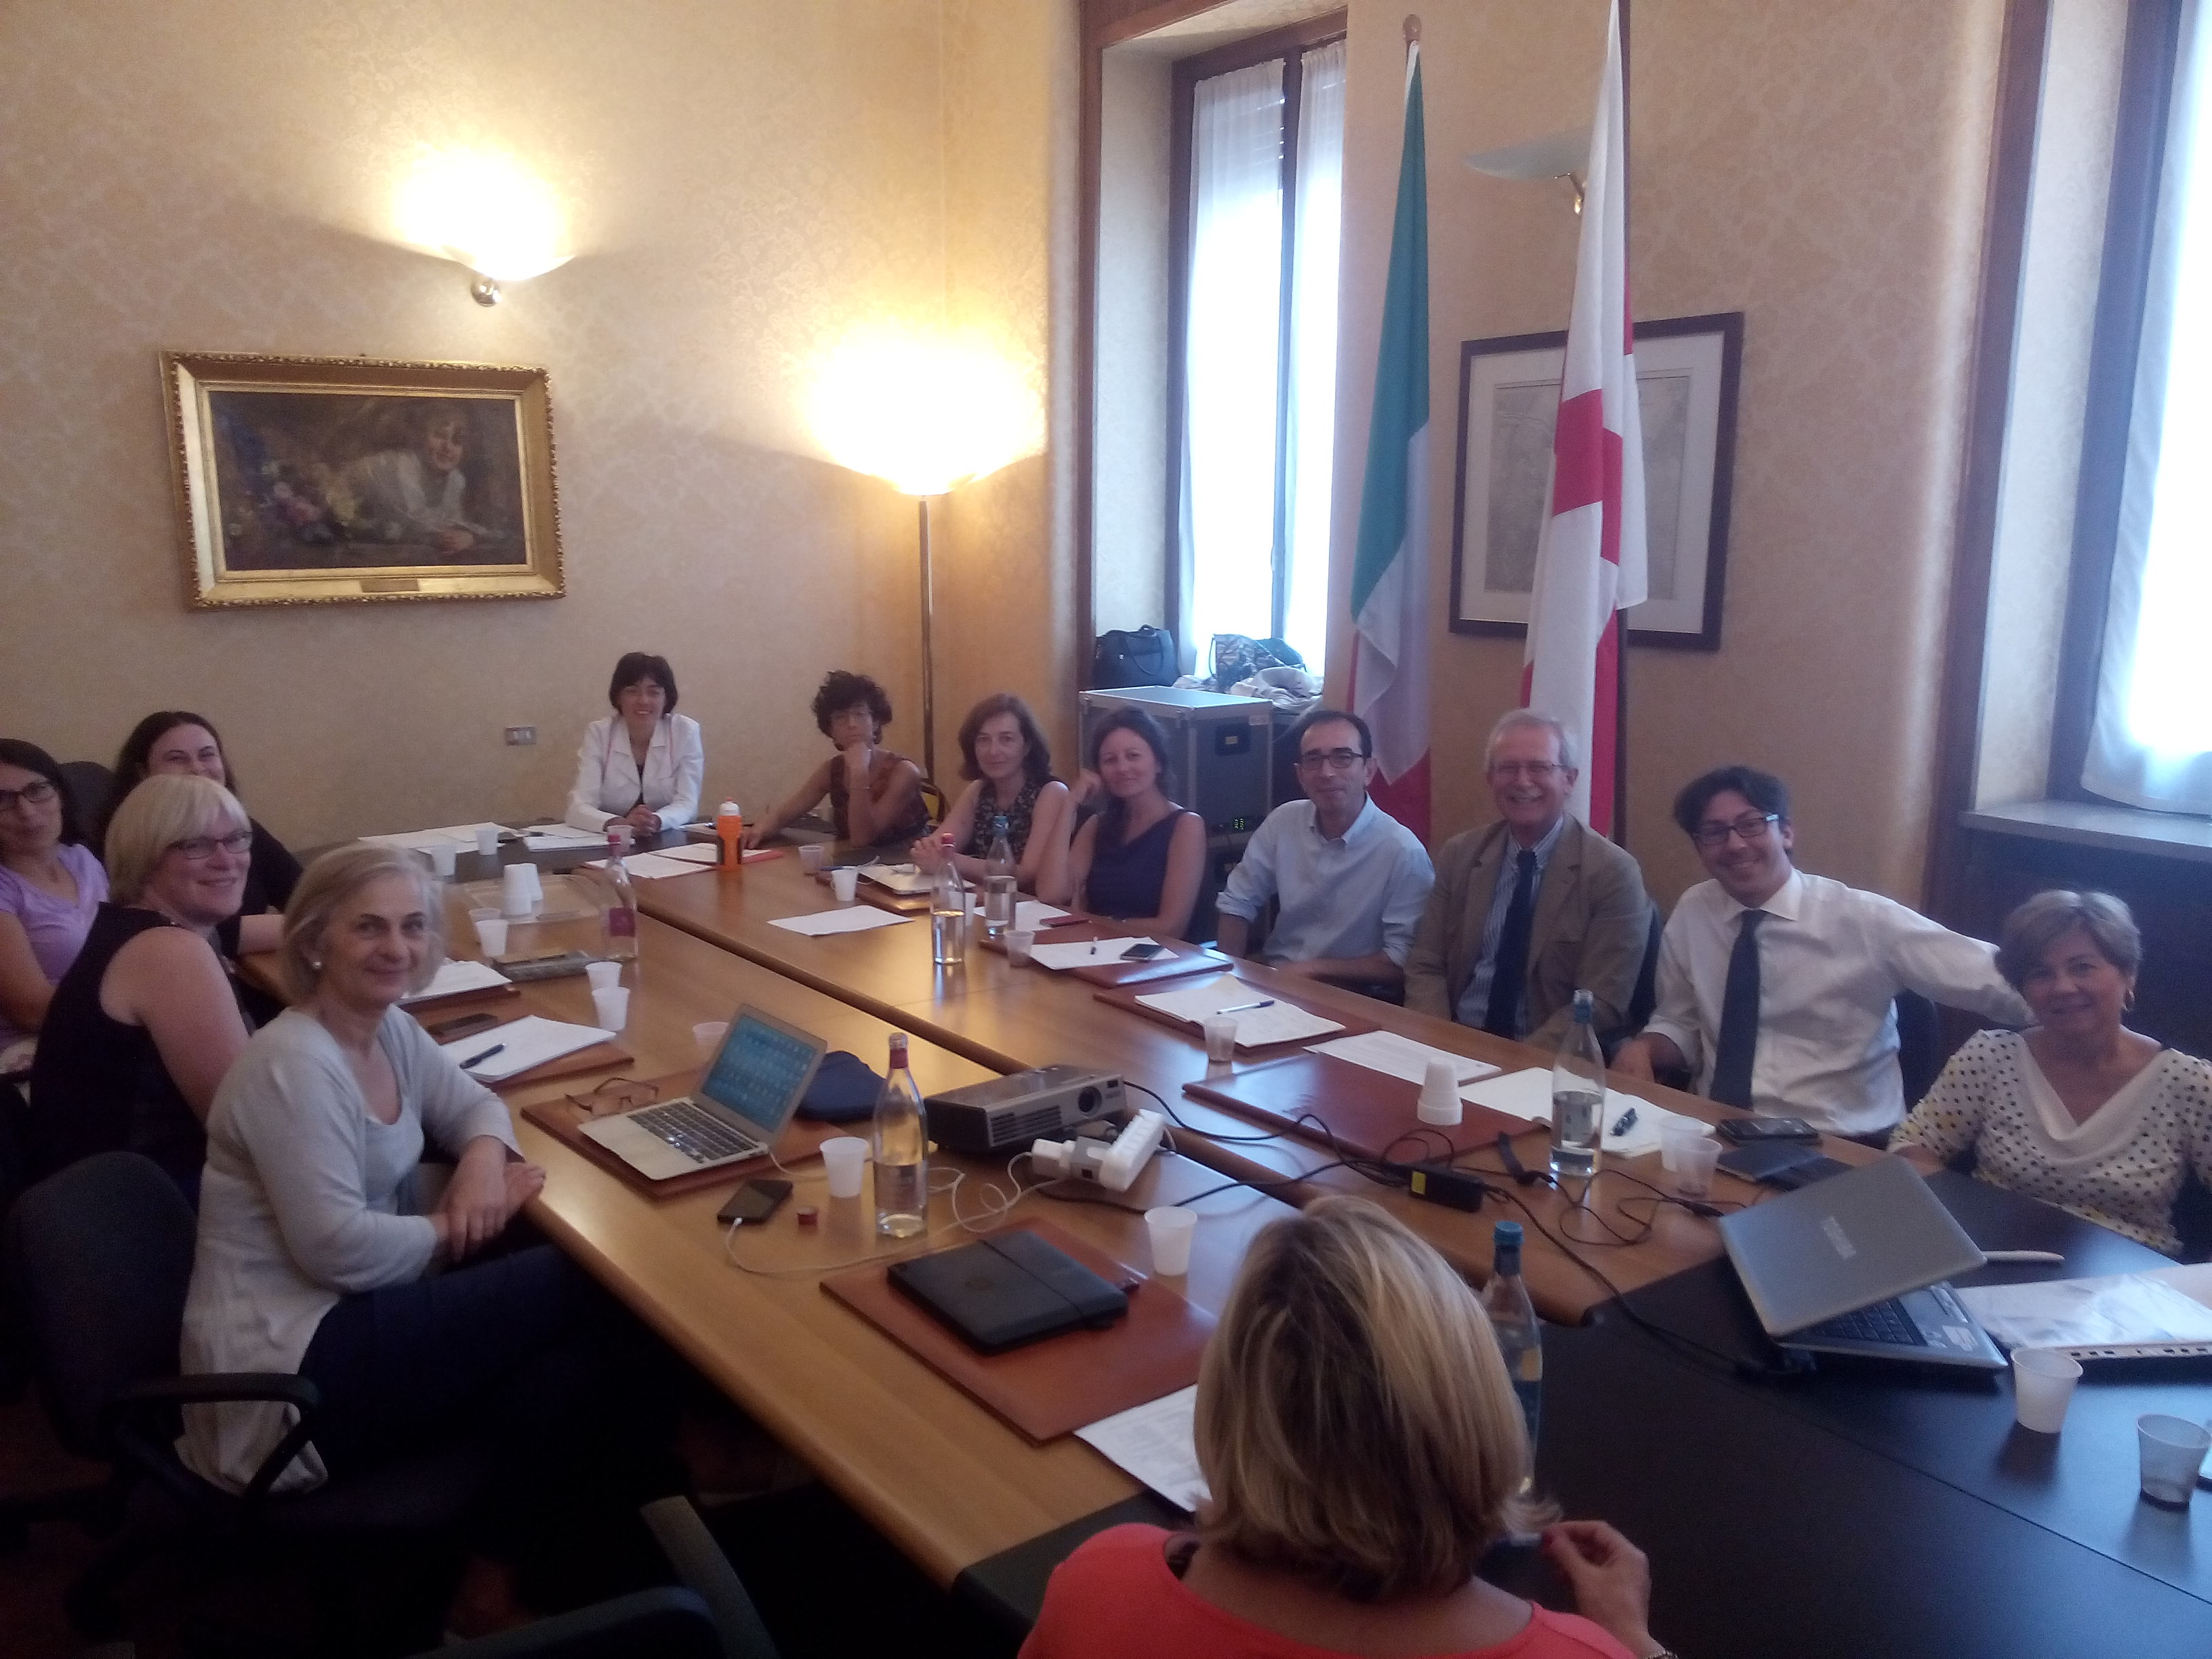 Leeds and Stockholm support refugee education in Milan